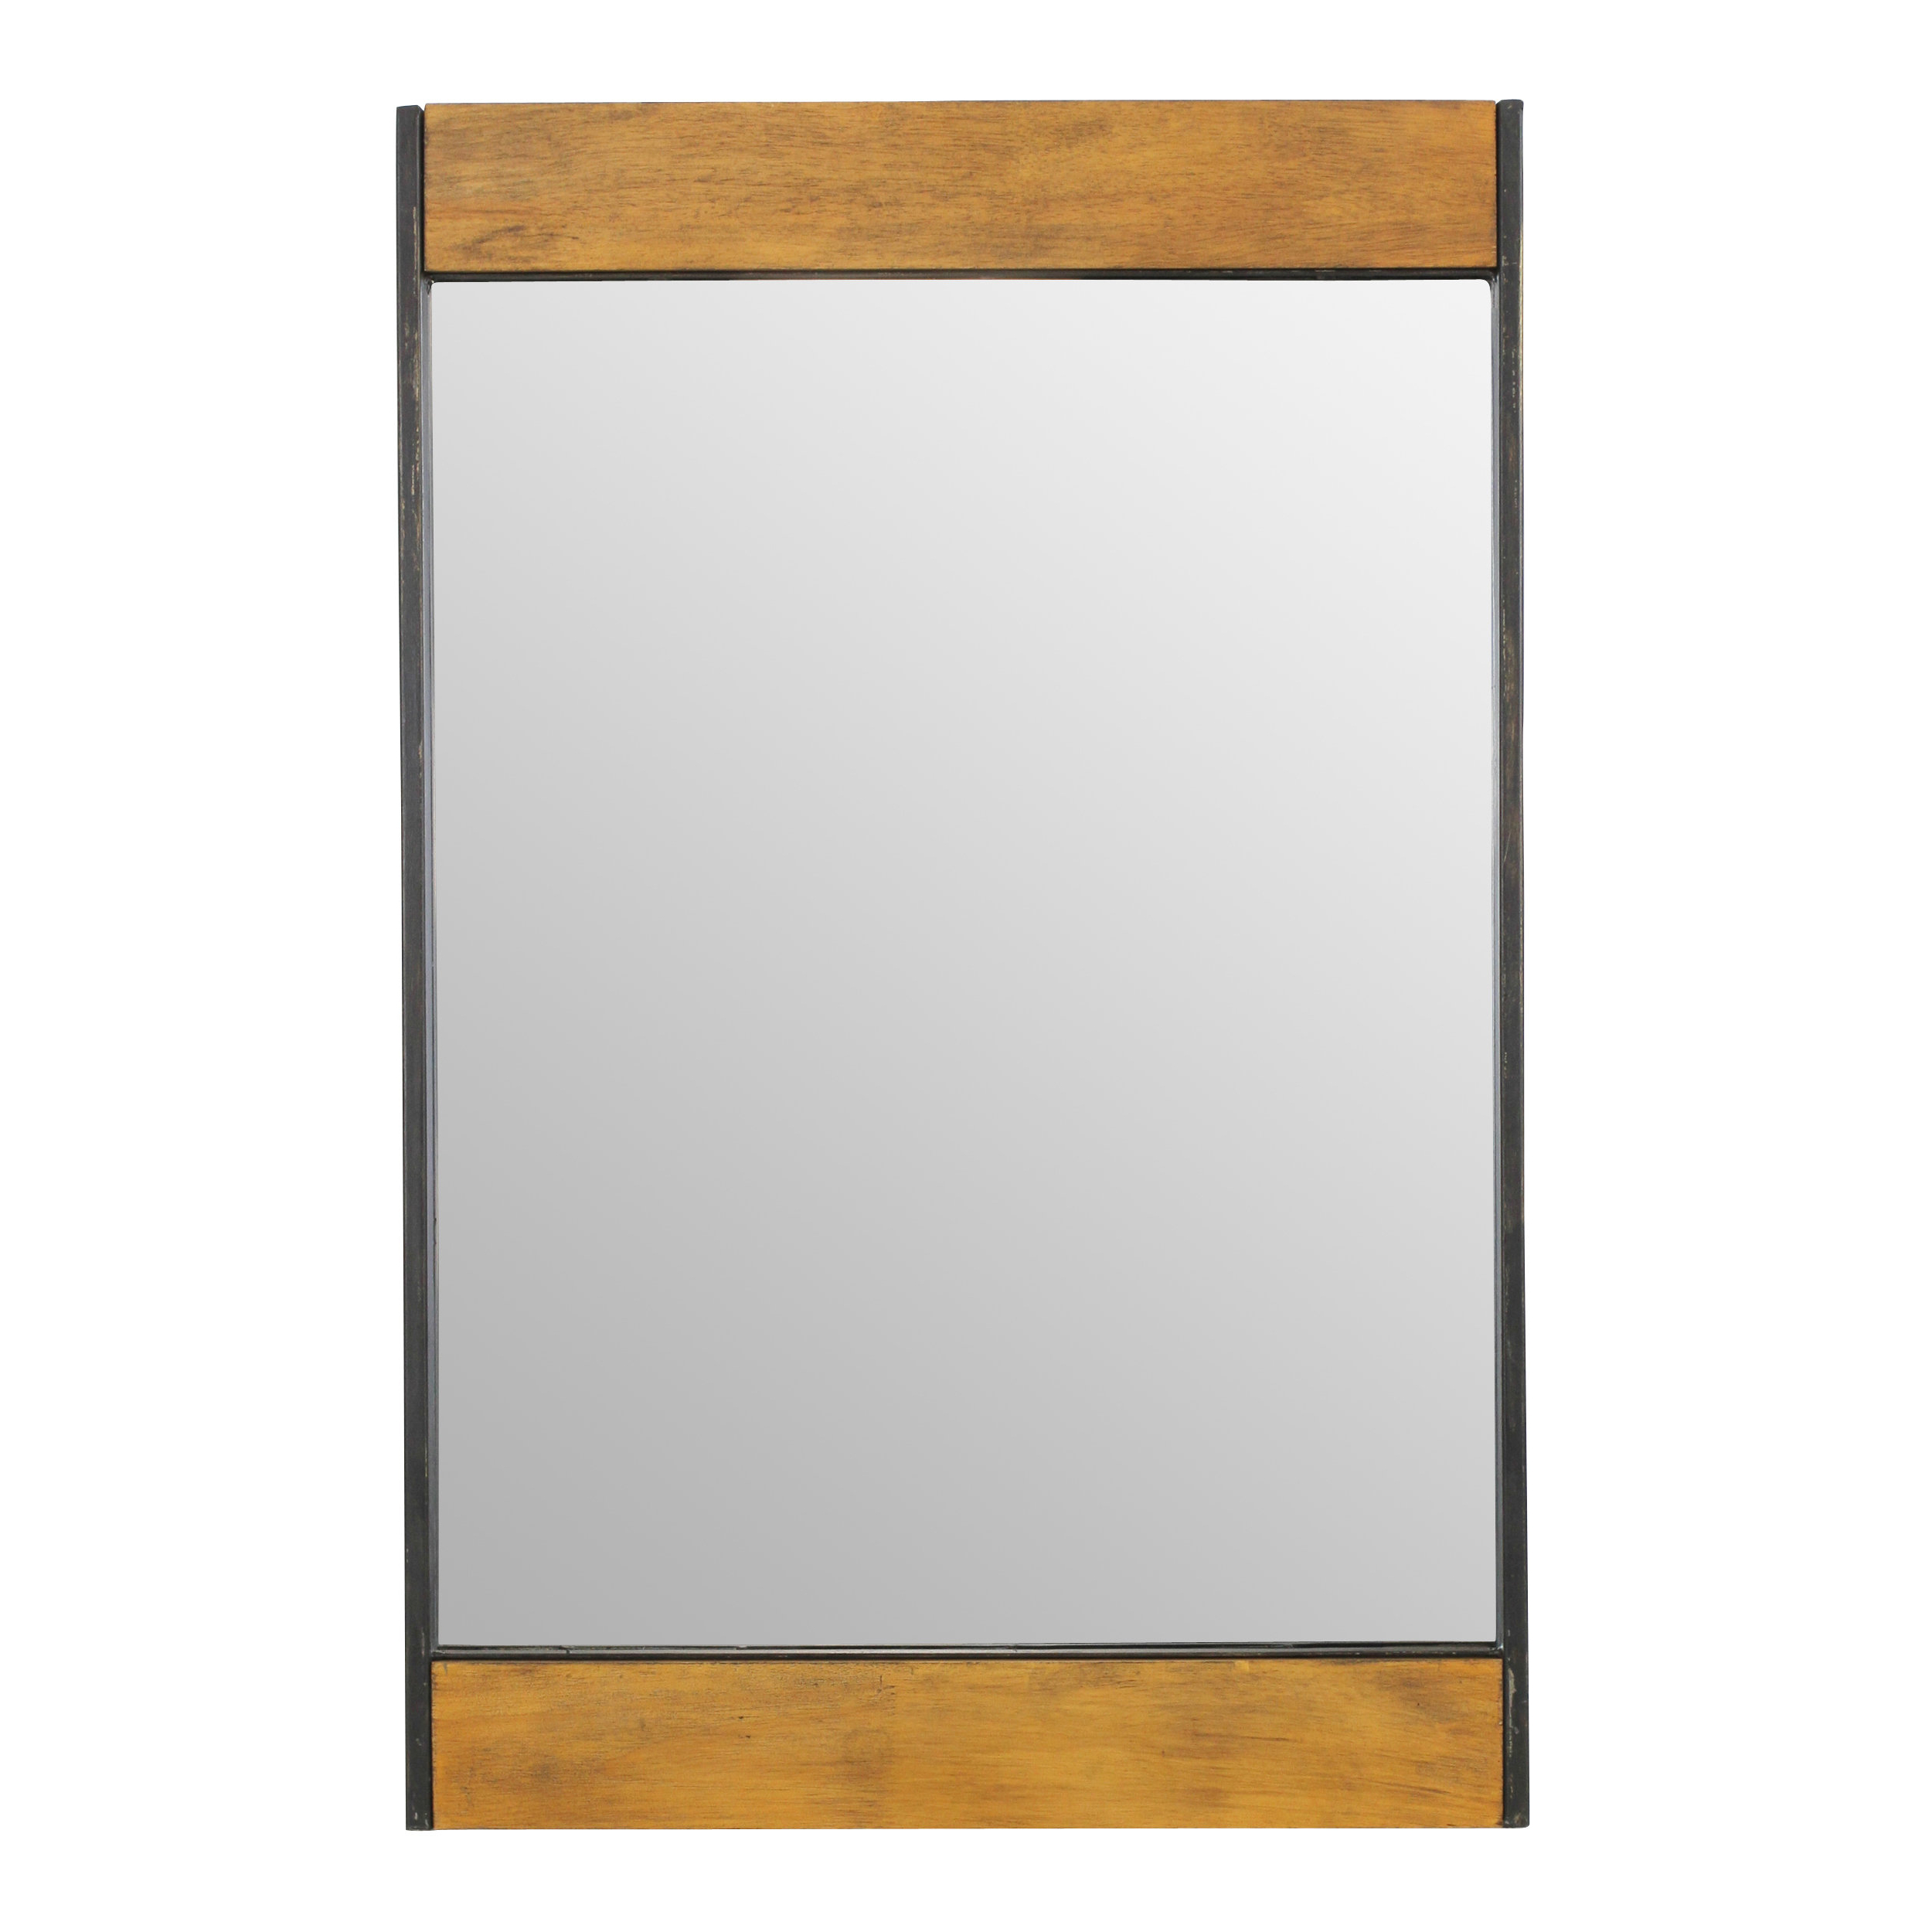 Most Recent Miranda Wood And Metal Wall Mirror Regarding Laurel Foundry Modern & Contemporary Accent Mirrors (View 9 of 20)